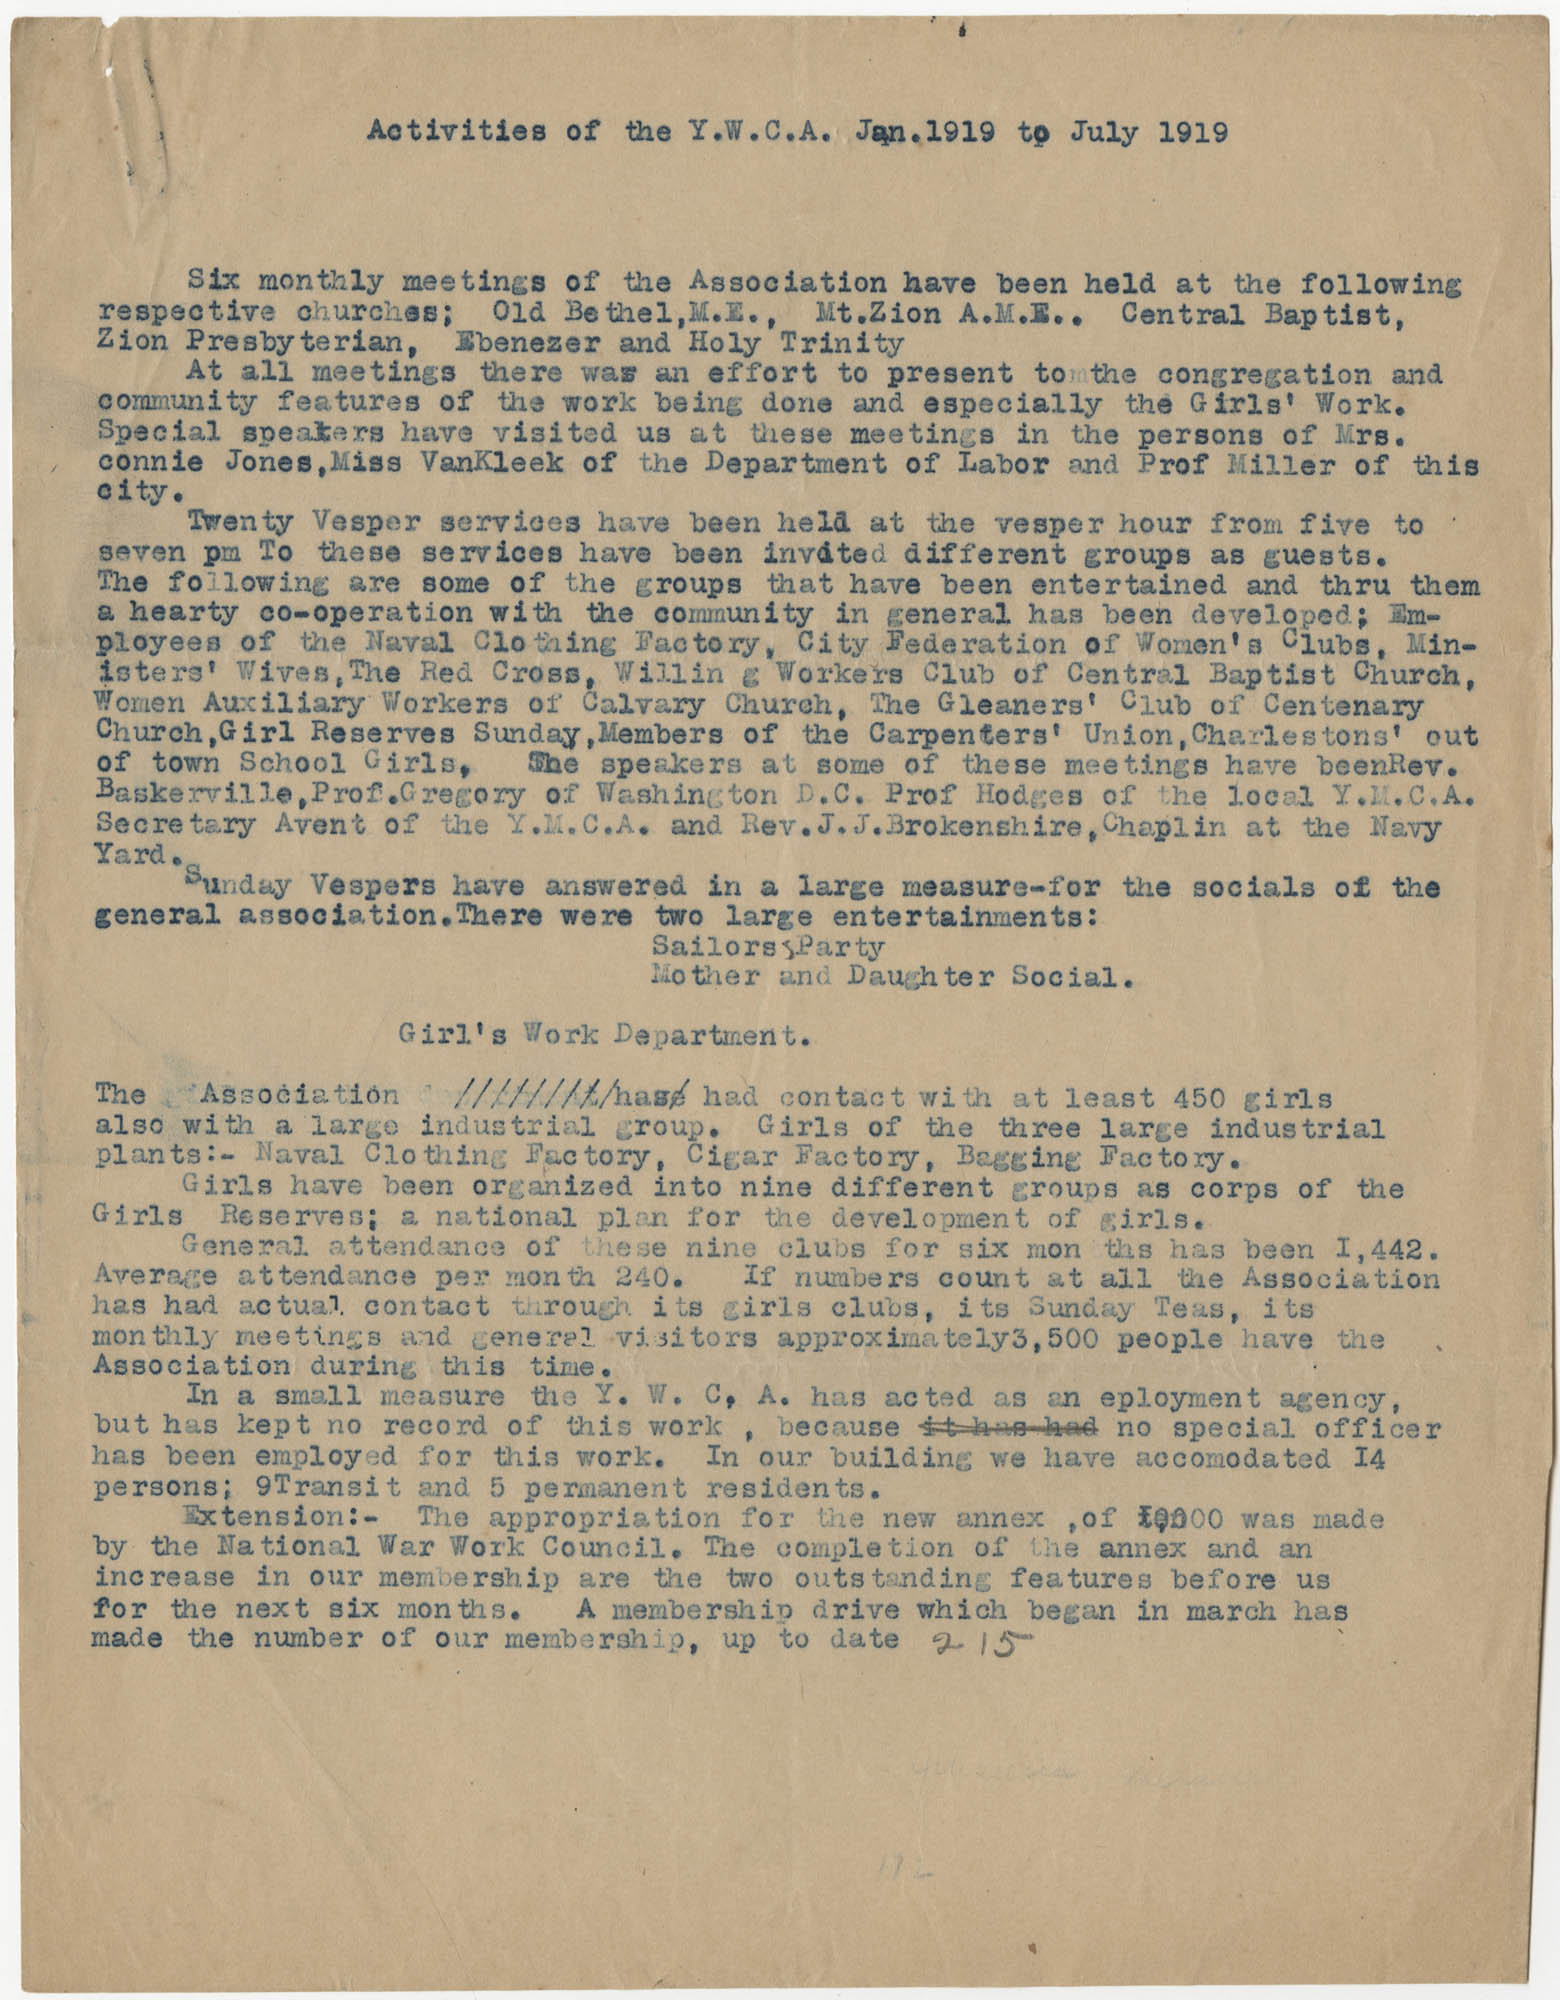 Activities of the Y.W.C.A., January to July 1919